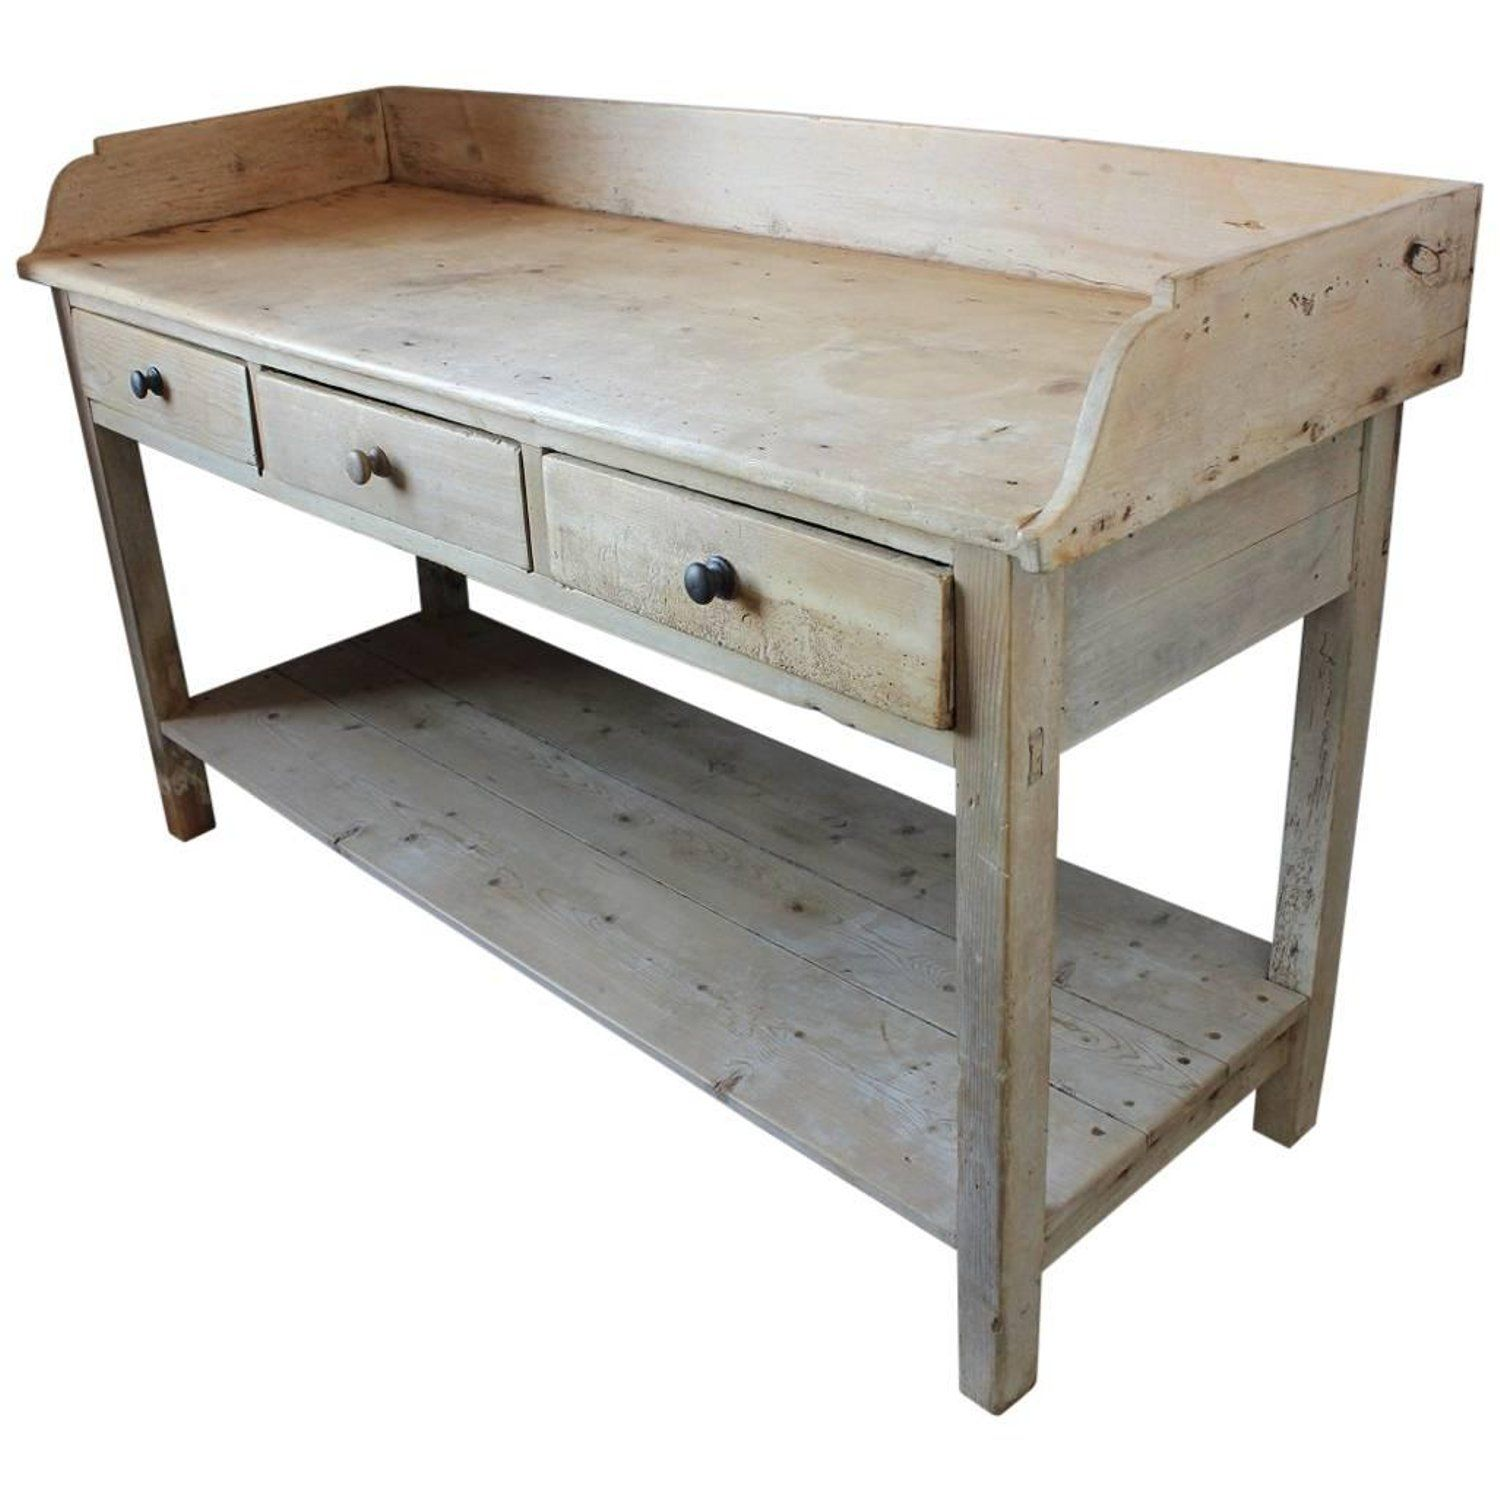 Antique French Bakery Work Table